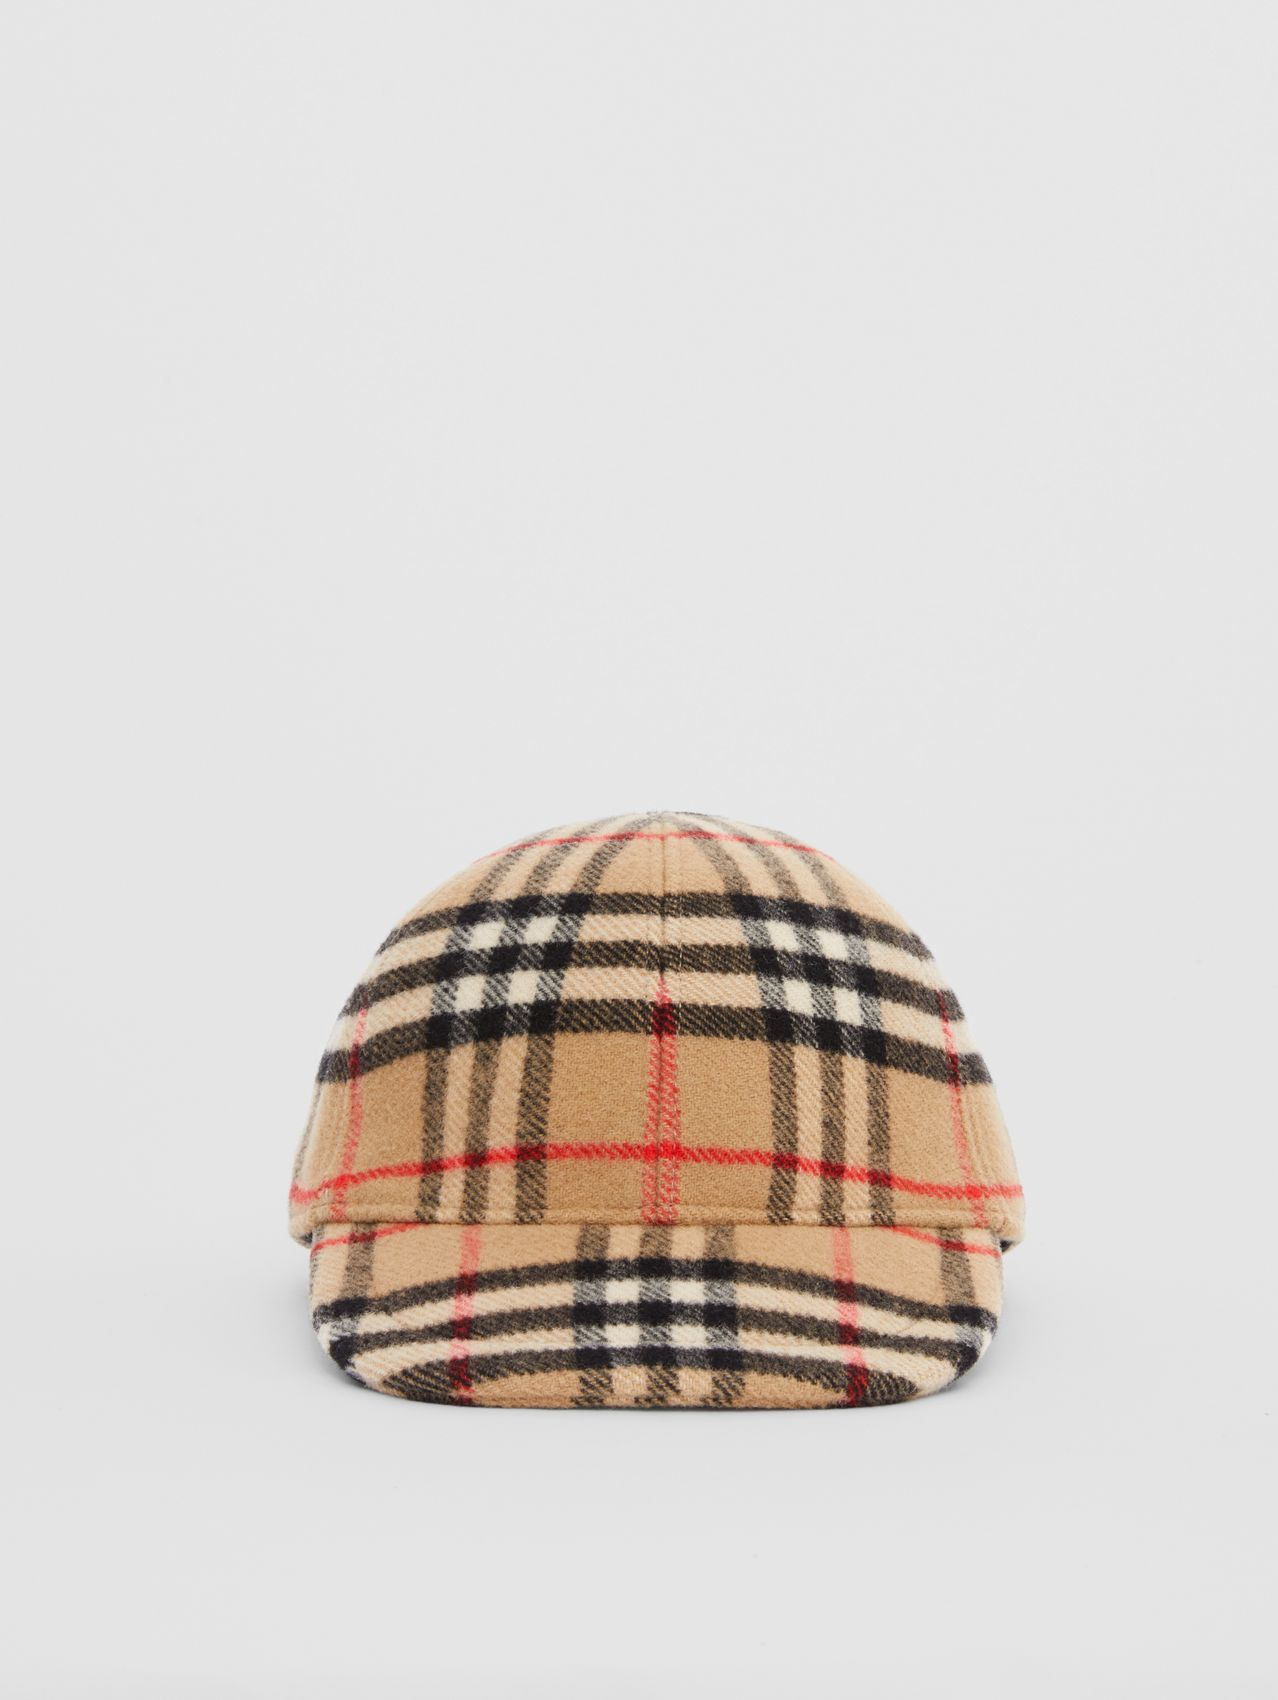 Vintage Check Wool Baseball Cap (Archive Beige)